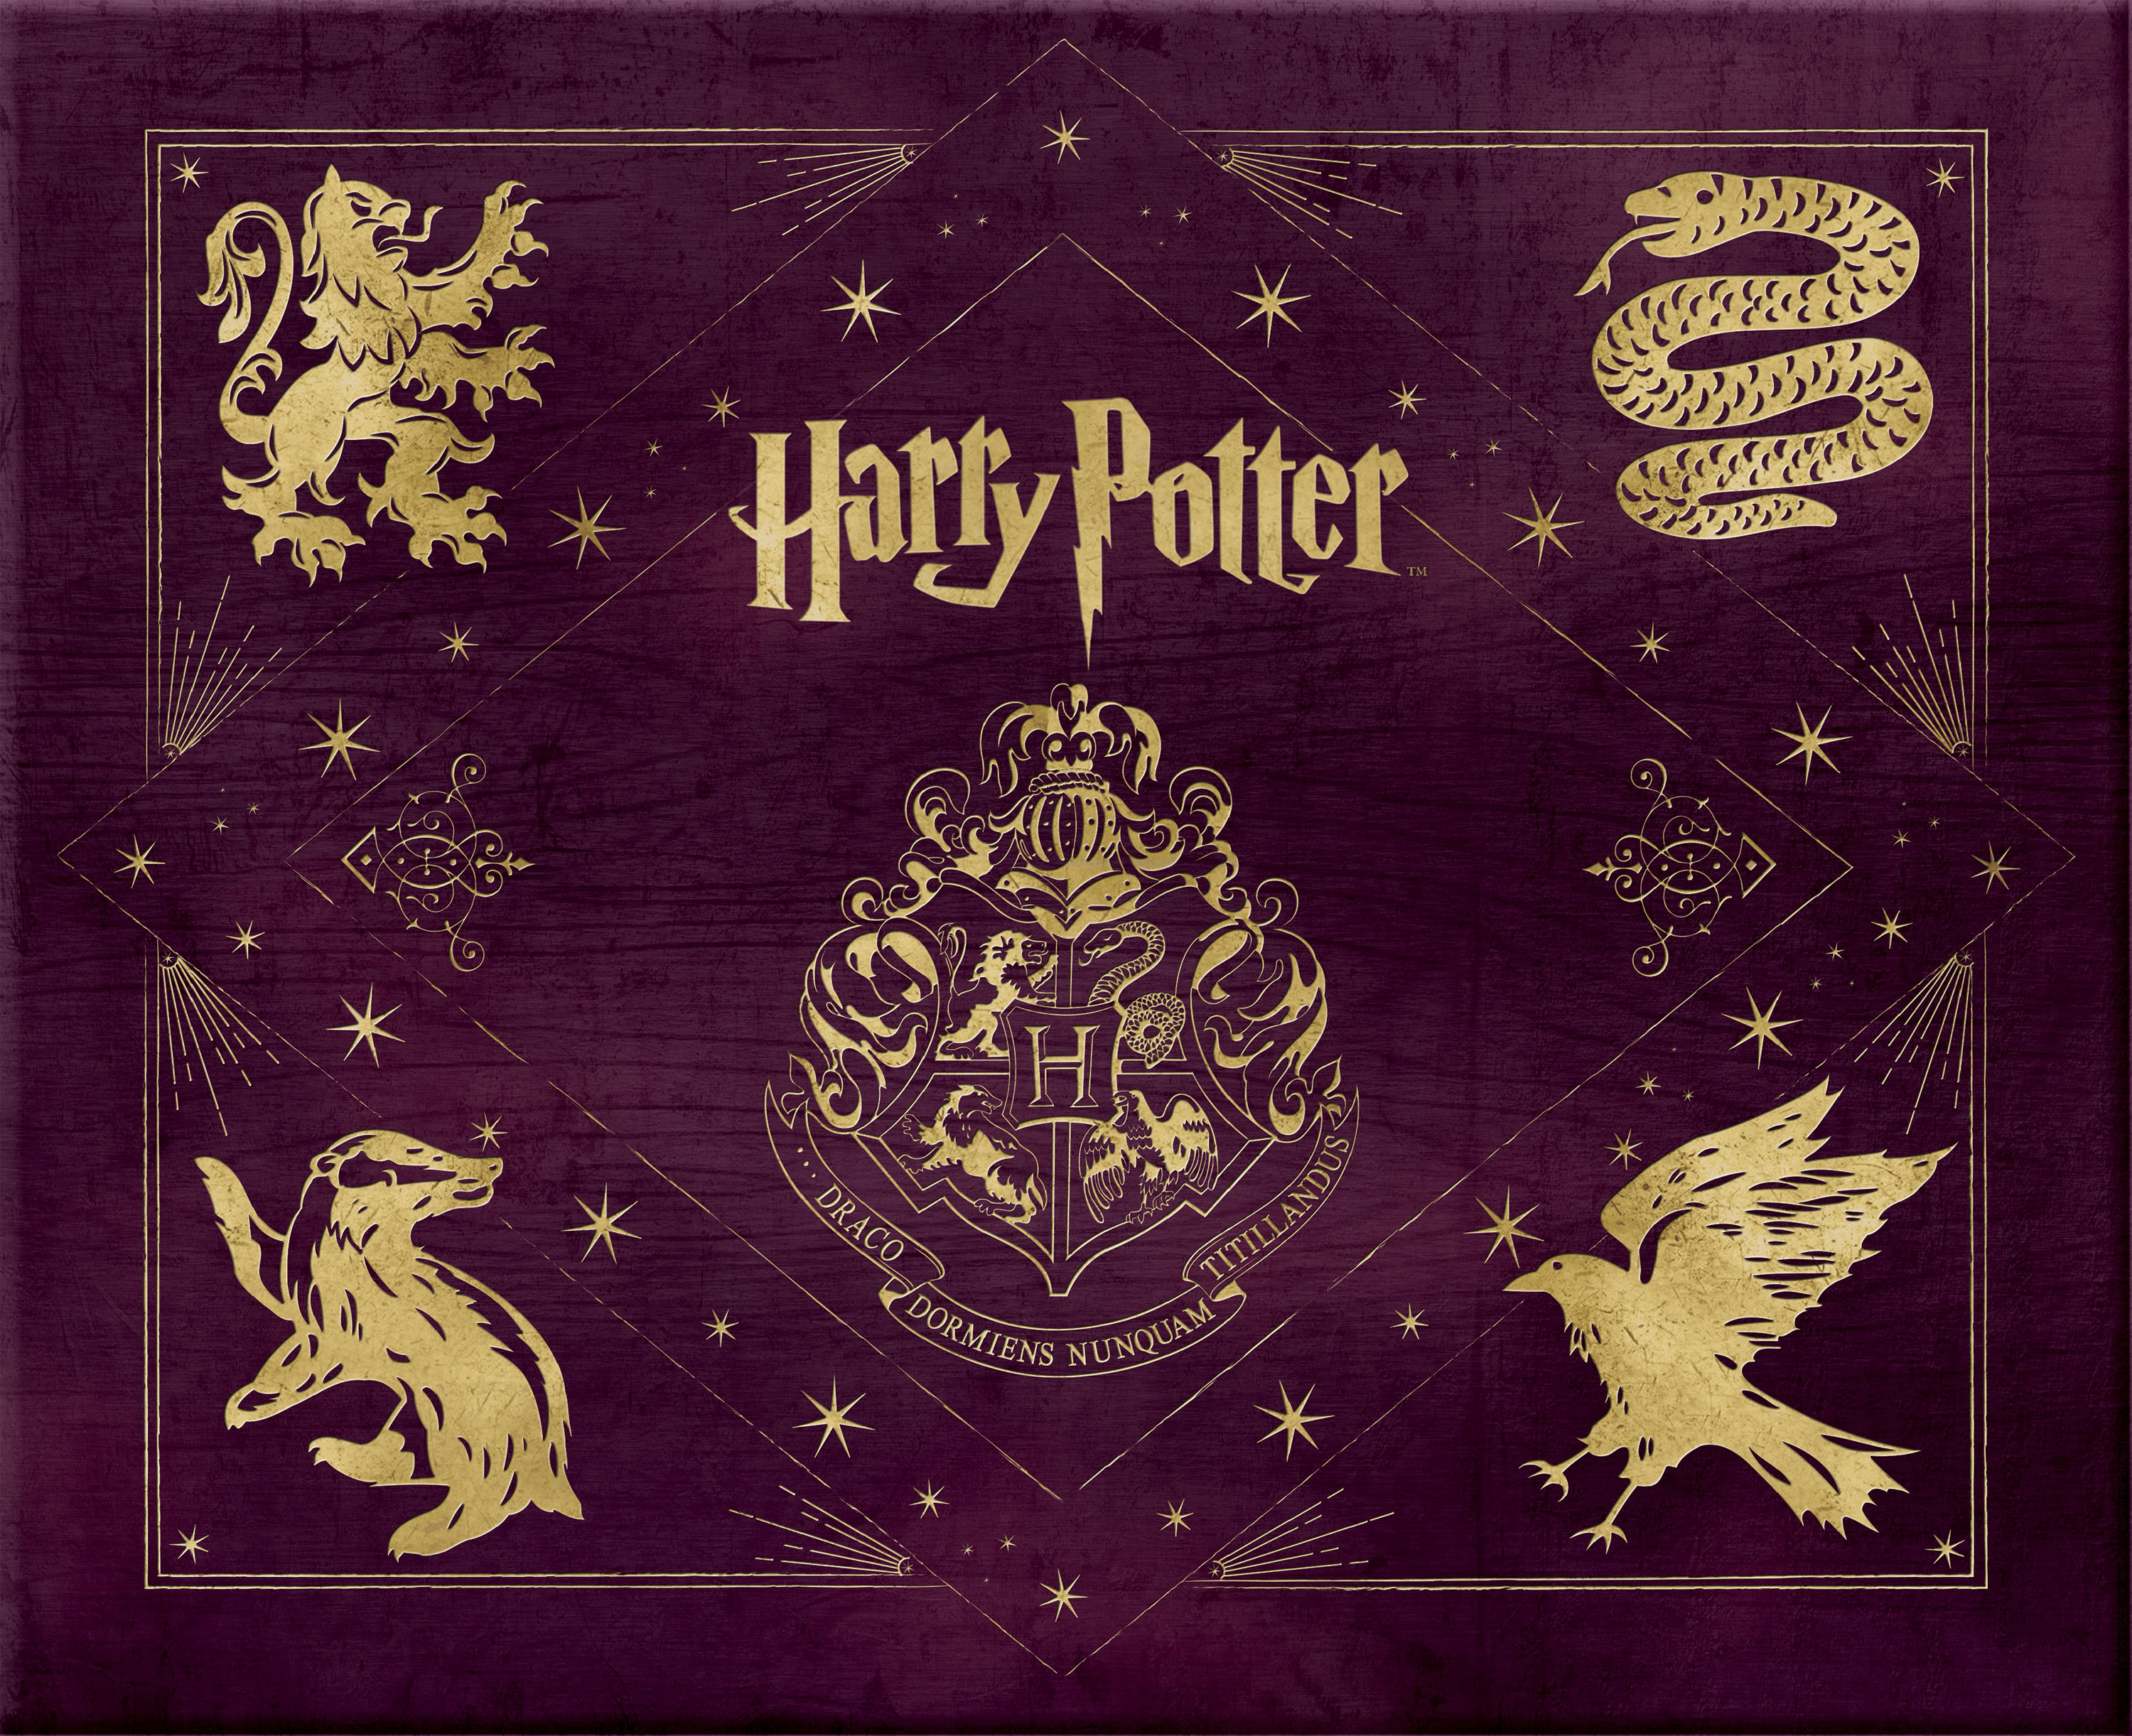 Harry Potter Invites is amazing invitation example